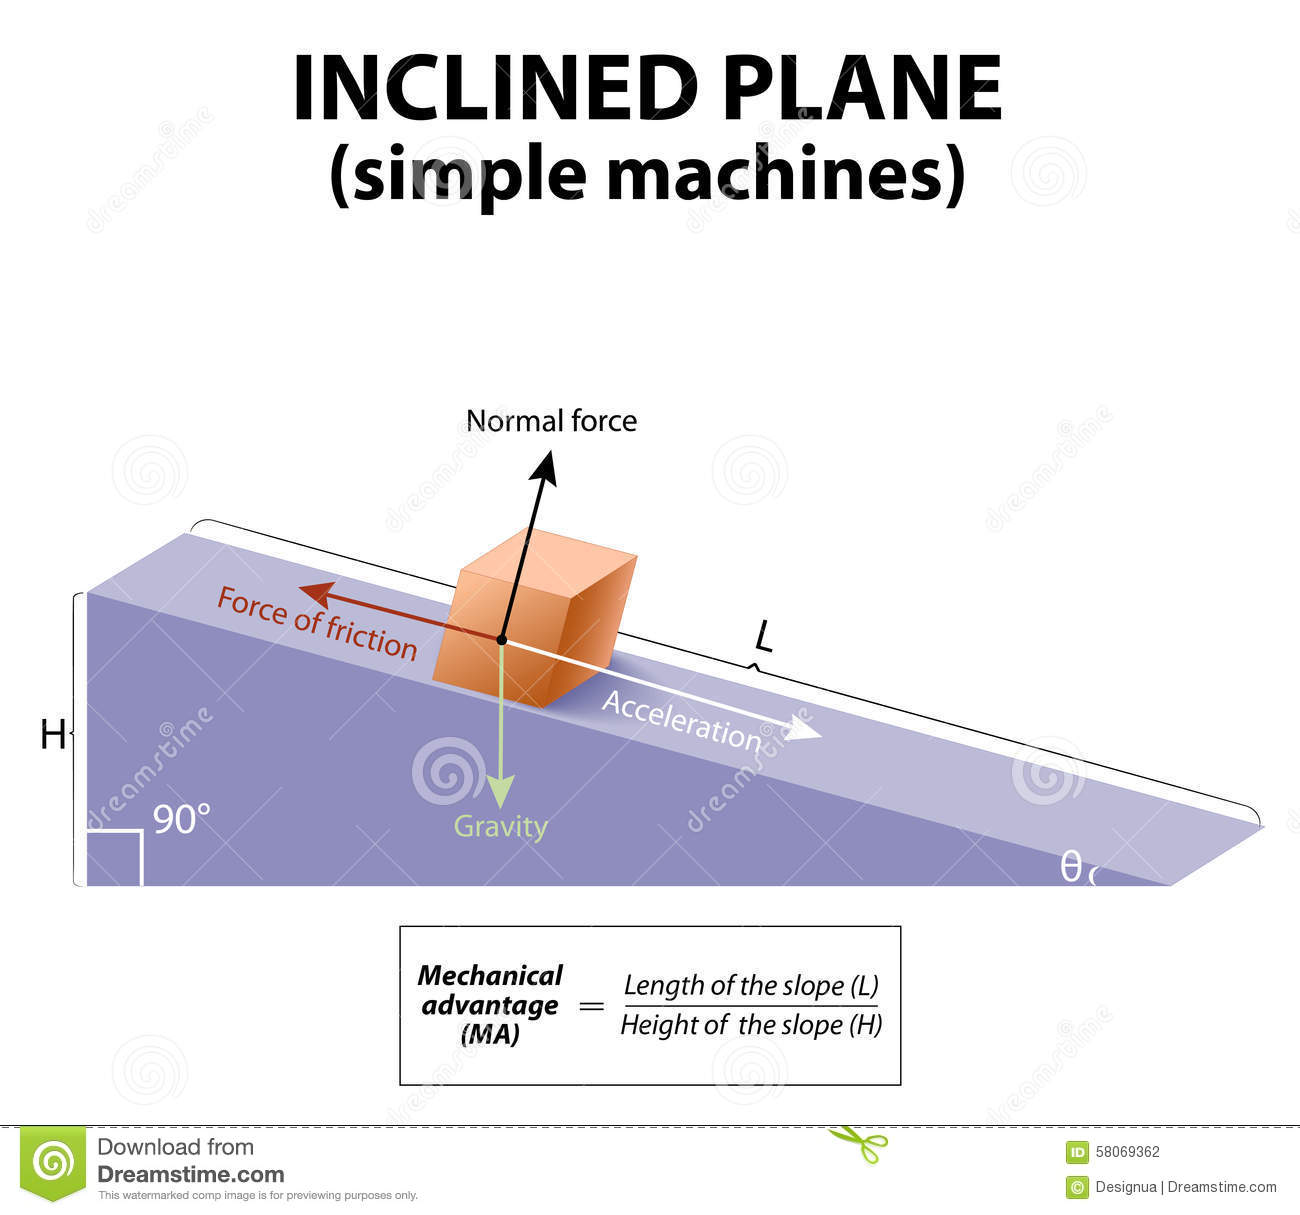 how to find force of friction on an incline